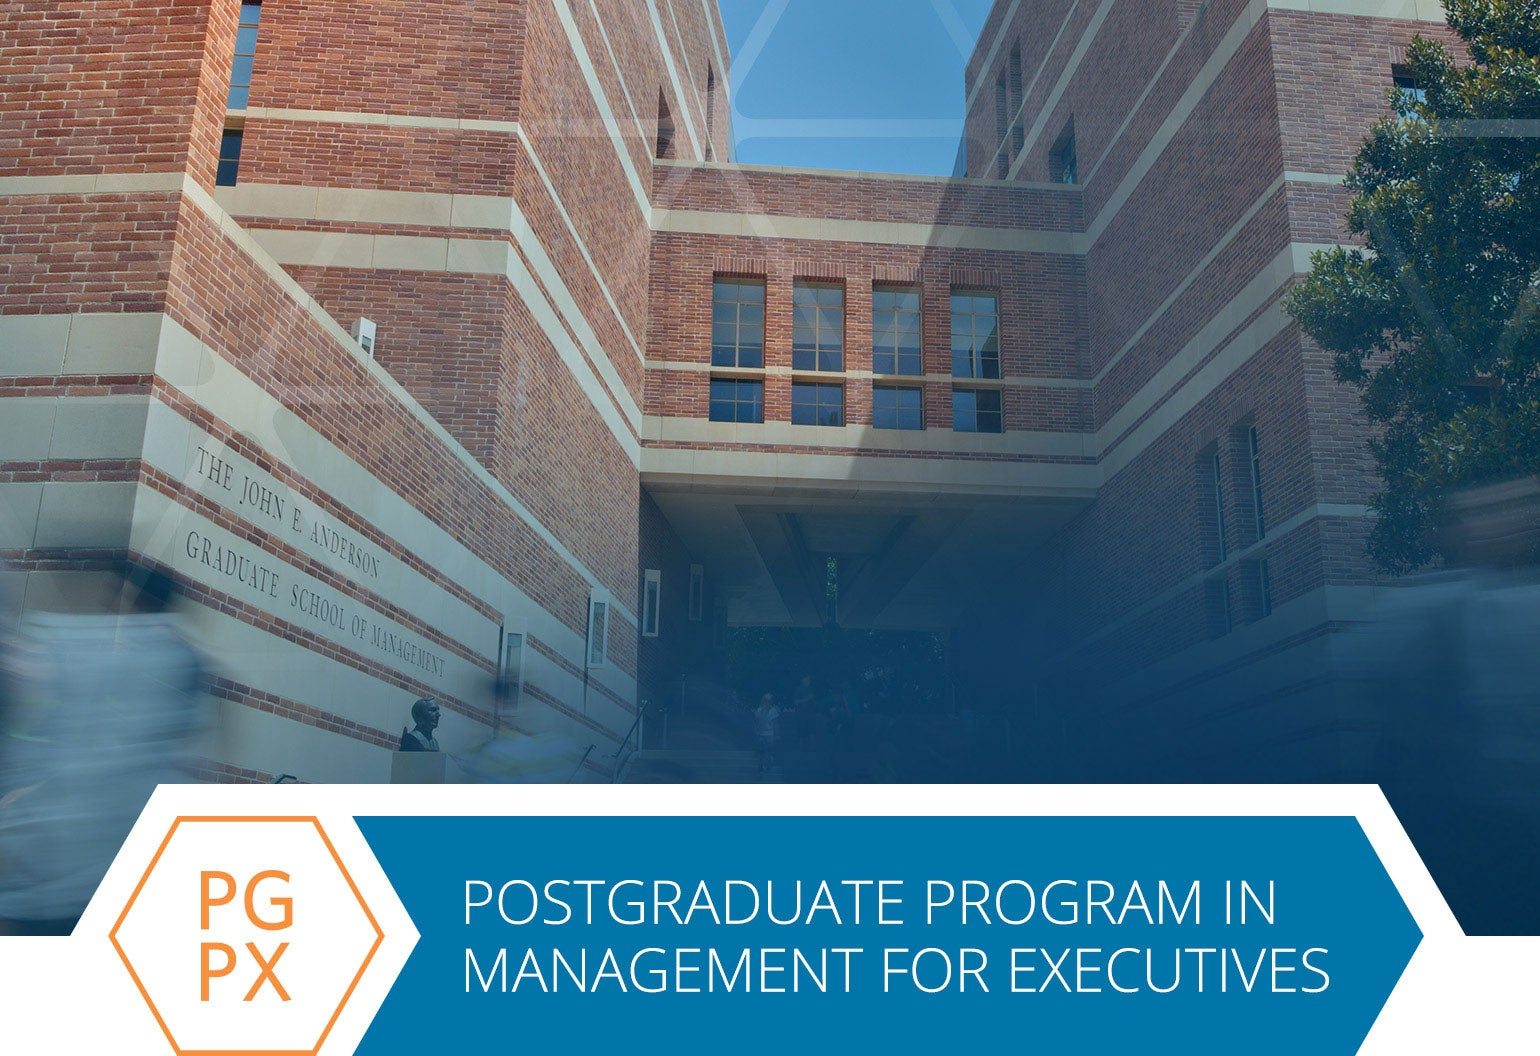 Best Executive Education Programs 2020 PGPX